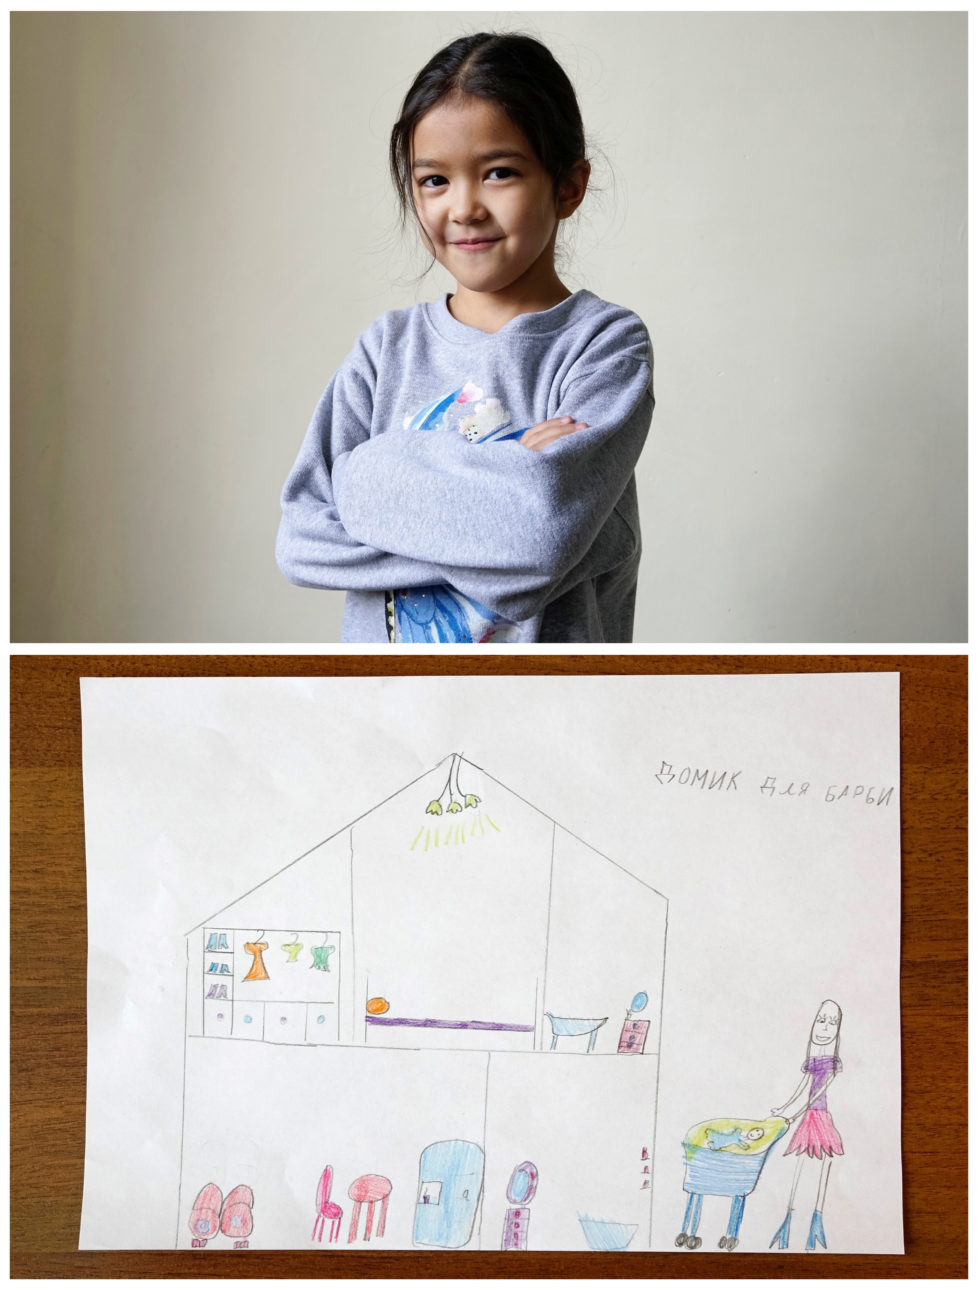 """A combination picture shows Adina Serikbayeva, 7, posing for a photograph at musical school before her piano lesson (top) and her drawing of what she wants to get for Christmas from Santa, in Almaty, Kazakhstan, November 24, 2016. Adina dreams to get a house for her Barbie doll. Writing on the drawing reads: """"House for Barbie."""" Reuters photographers around the world asked children to draw what they wanted to receive from Santa for Christmas. REUTERS/Shamil Zhumatov SEARCH """"CHRISTMAS WISHES"""" FOR THIS STORY. SEARCH """"WIDER IMAGE"""" FOR ALL STORIES. - RTSV35X"""